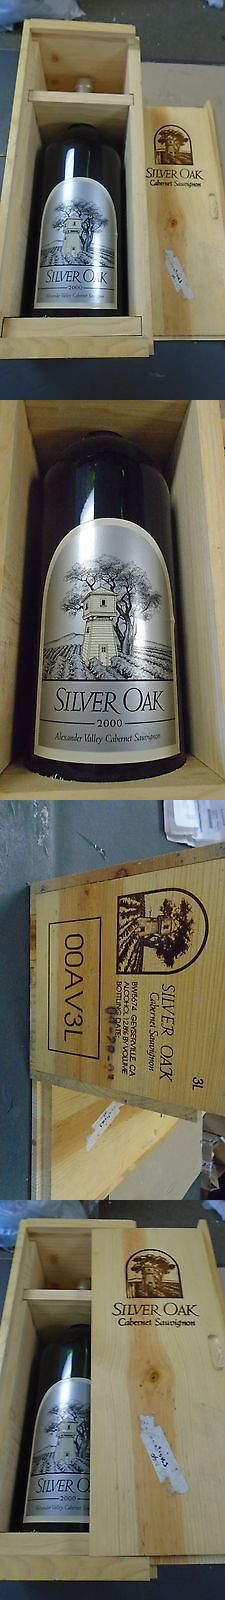 Red Wines 38182: 2000 Silver Oak Cabernet Sauvignon Alexander Valley Wine 3 Liter Double Magnum -> BUY IT NOW ONLY: $999.99 on eBay!